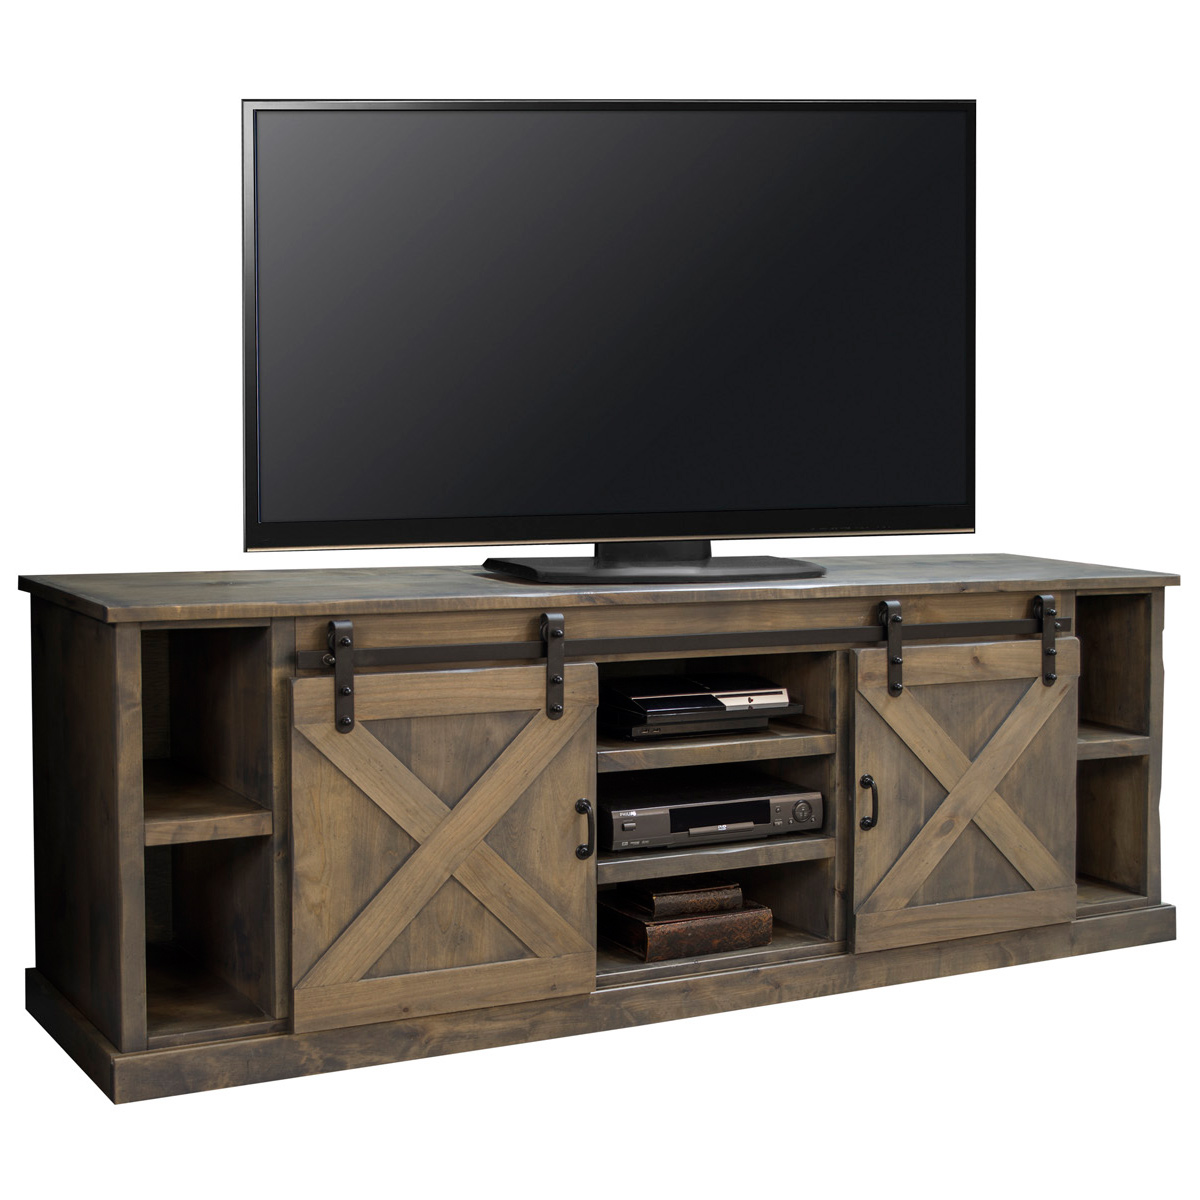 "Legends Furniture FH1425 Farmhouse 85"" TV Stand Console in Distressed Barnwood w Sliding Barn Doors"